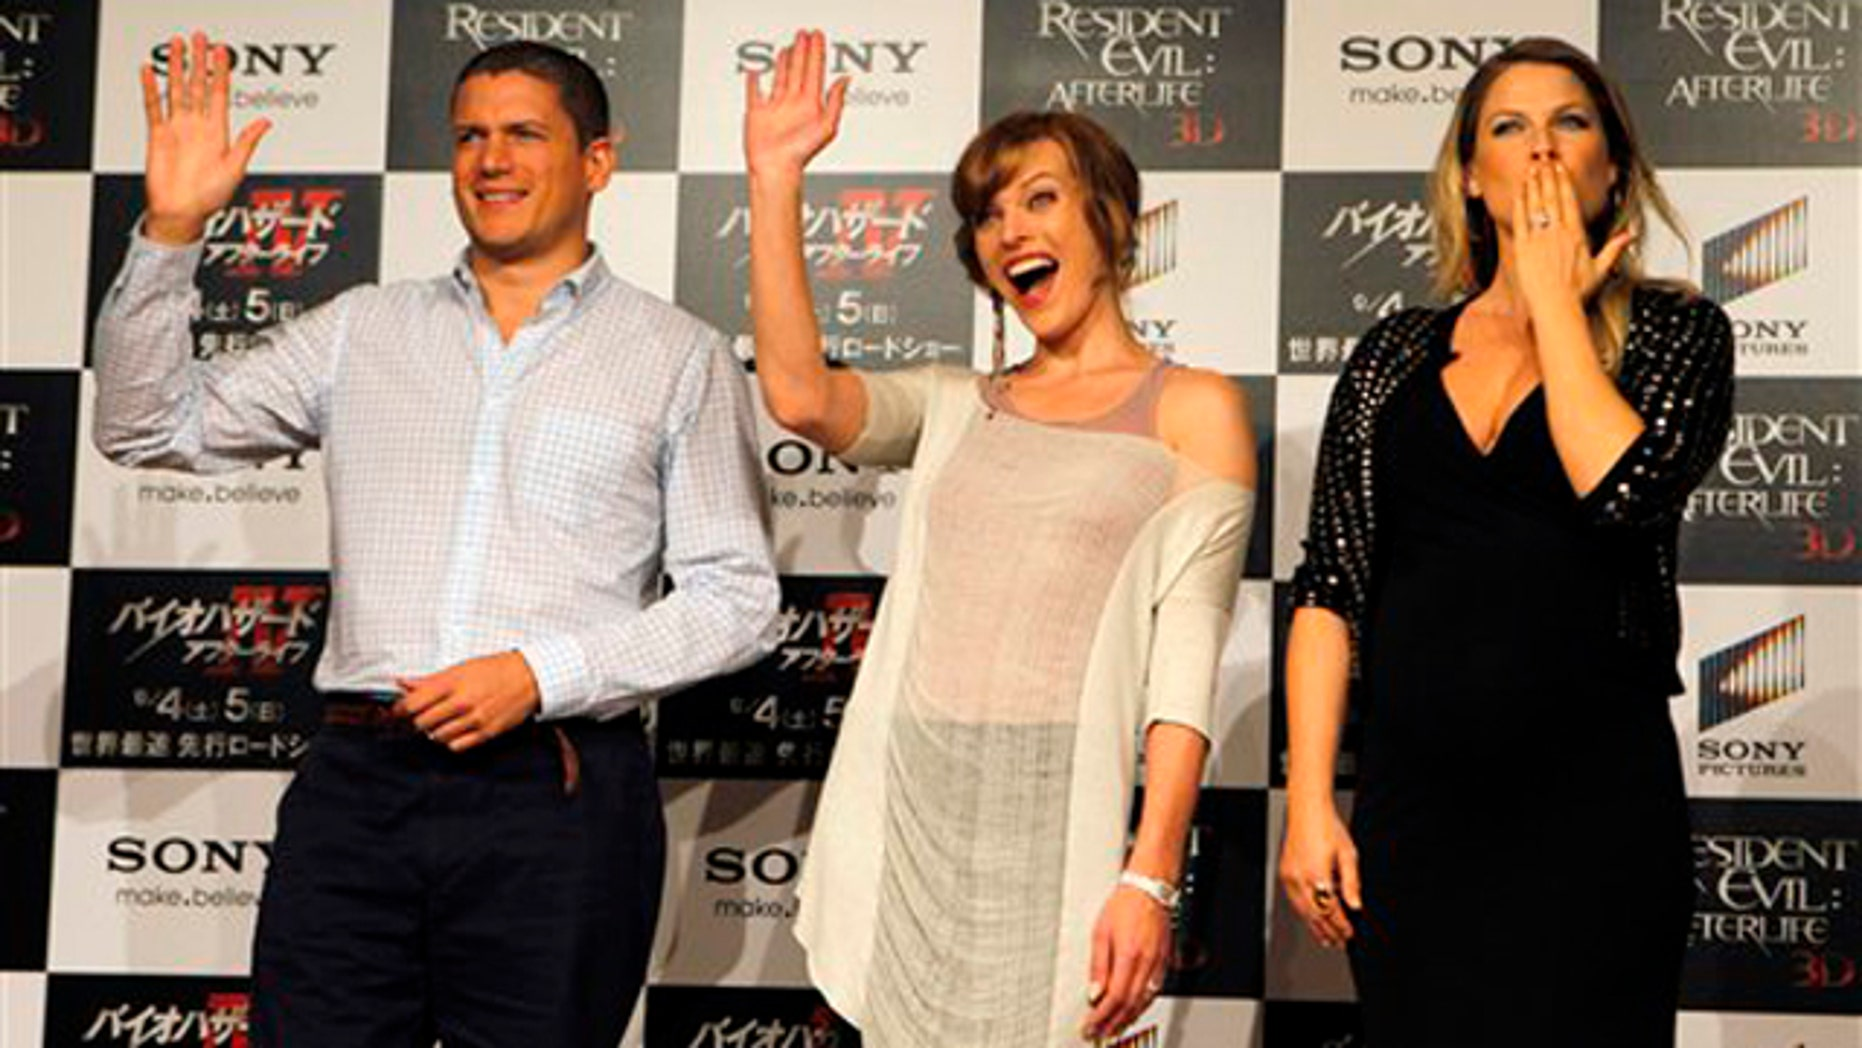 """Actresses Milla Jovovich, center, Ali Larter, right, and actor Wentworth Miller react during a press conference for their film """"Resident Evil: Afterlife"""" in Tokyo Friday, Sept. 3, 2010. (AP Photo/Junji Kurokawa)"""